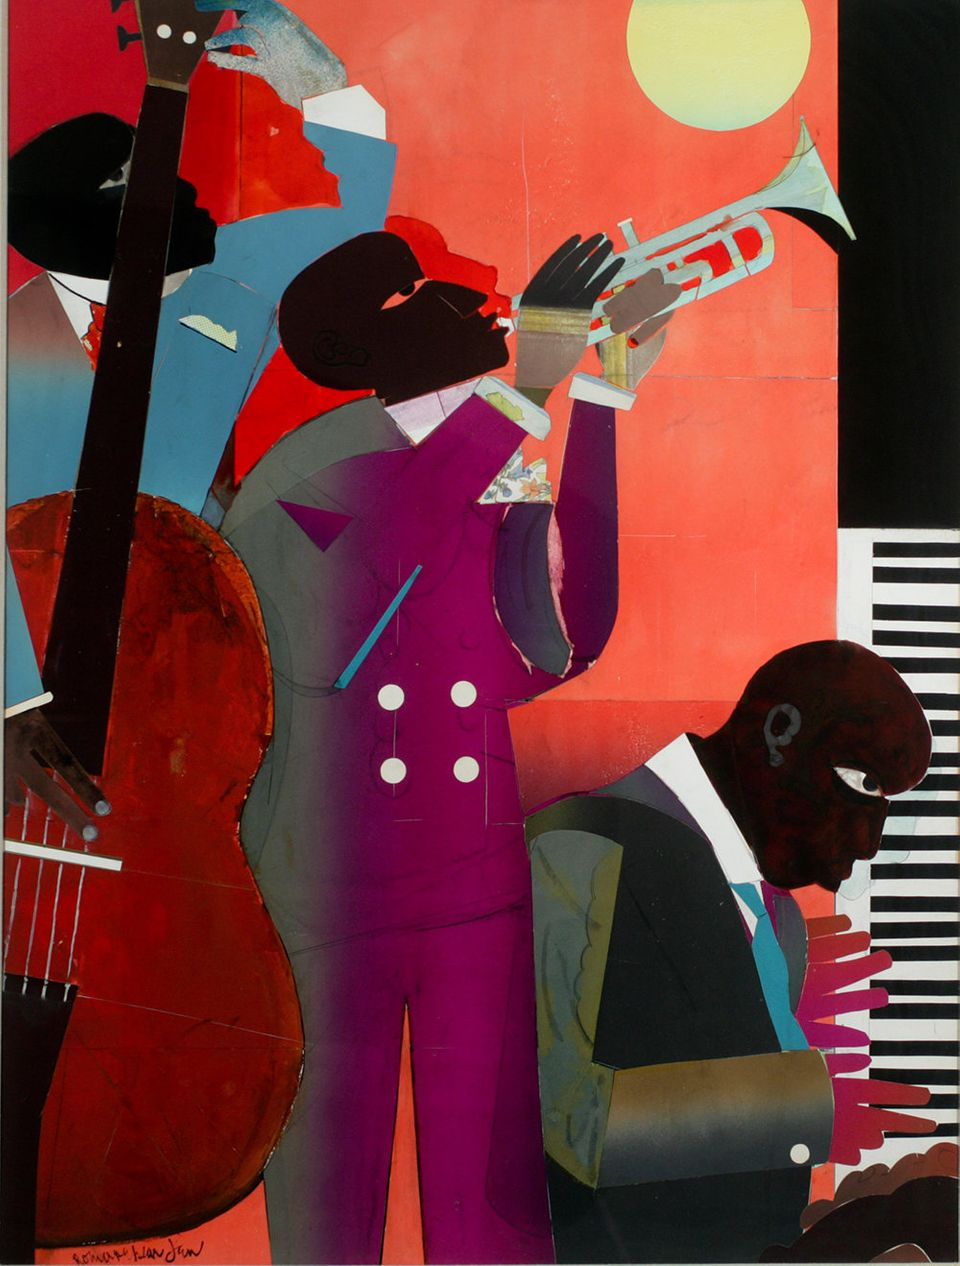 Romare Bearden Up at Minton's 1980 Watercolor and Collage on Board 39 1/2 x 29 1/2 inches